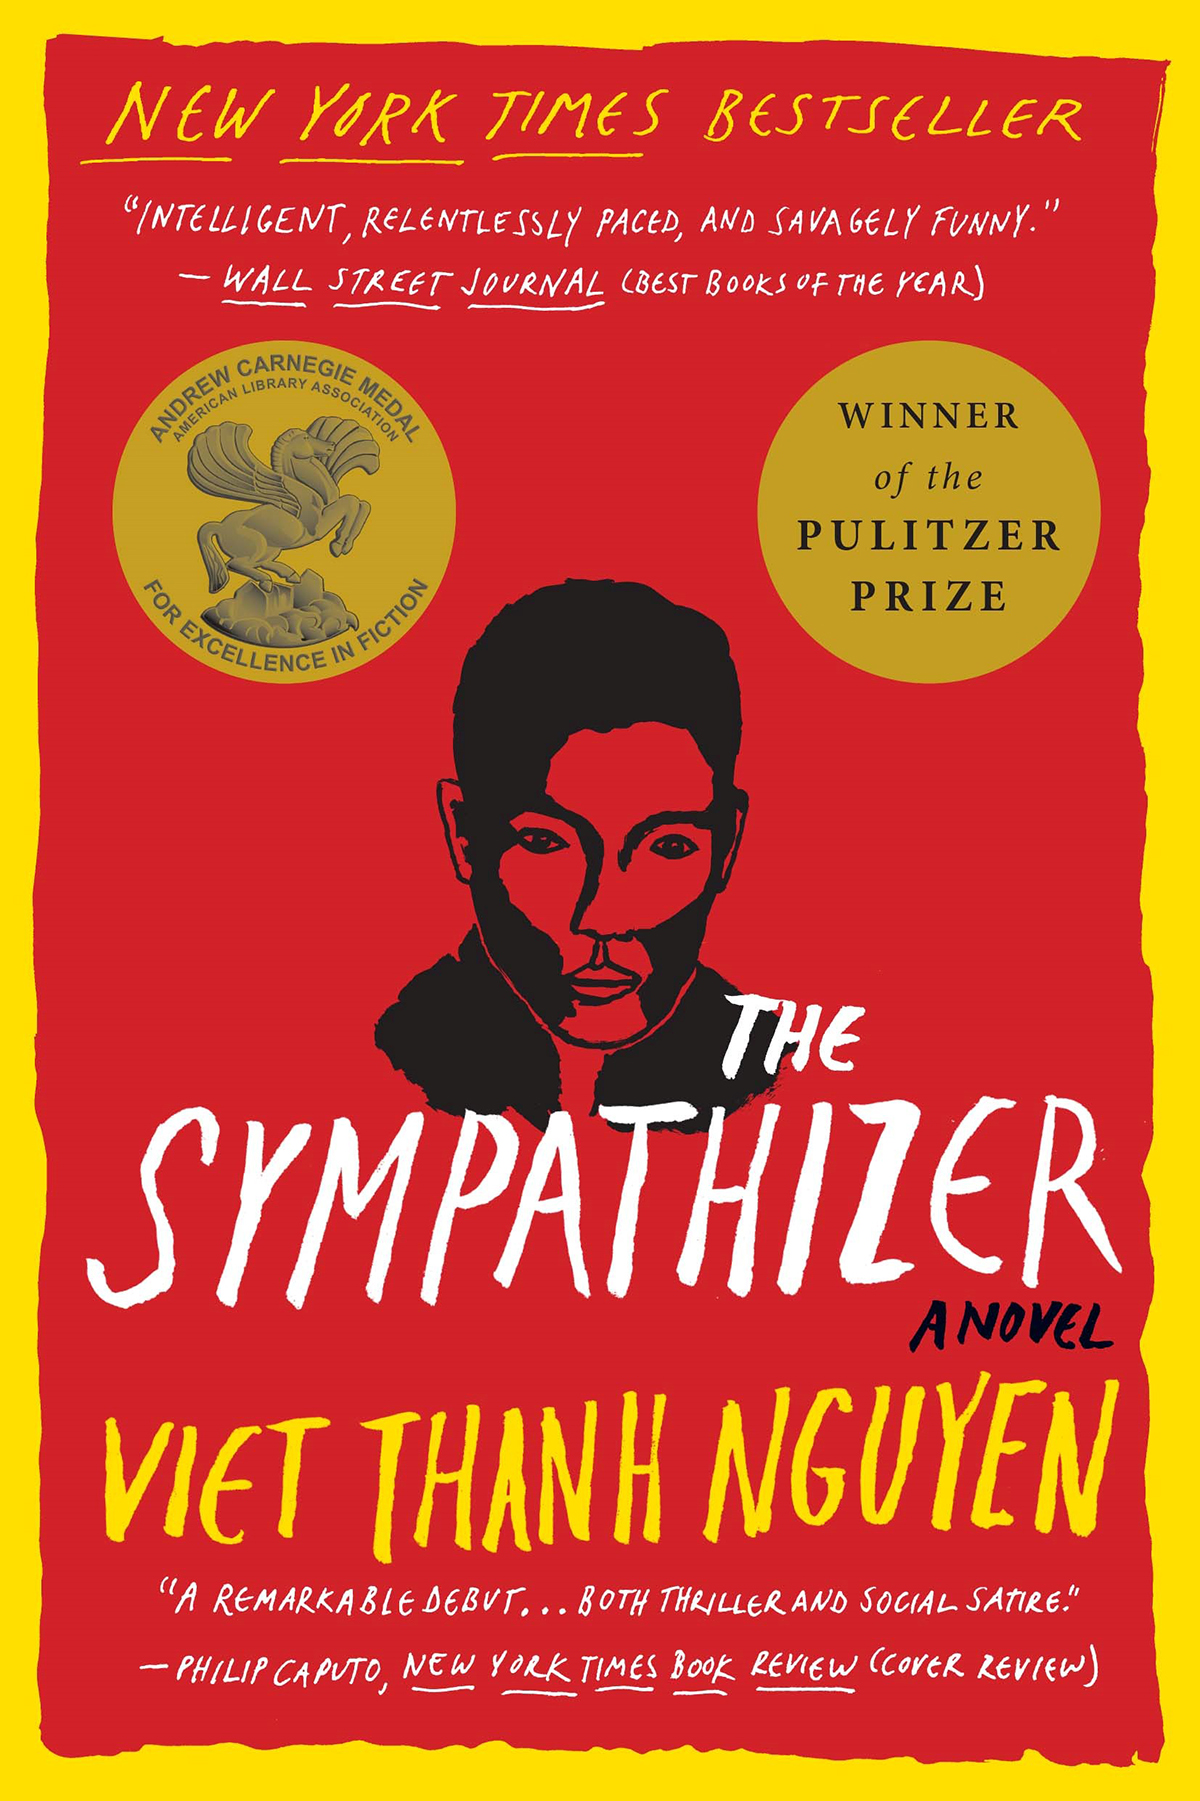 The cover of the book The Sympathizer